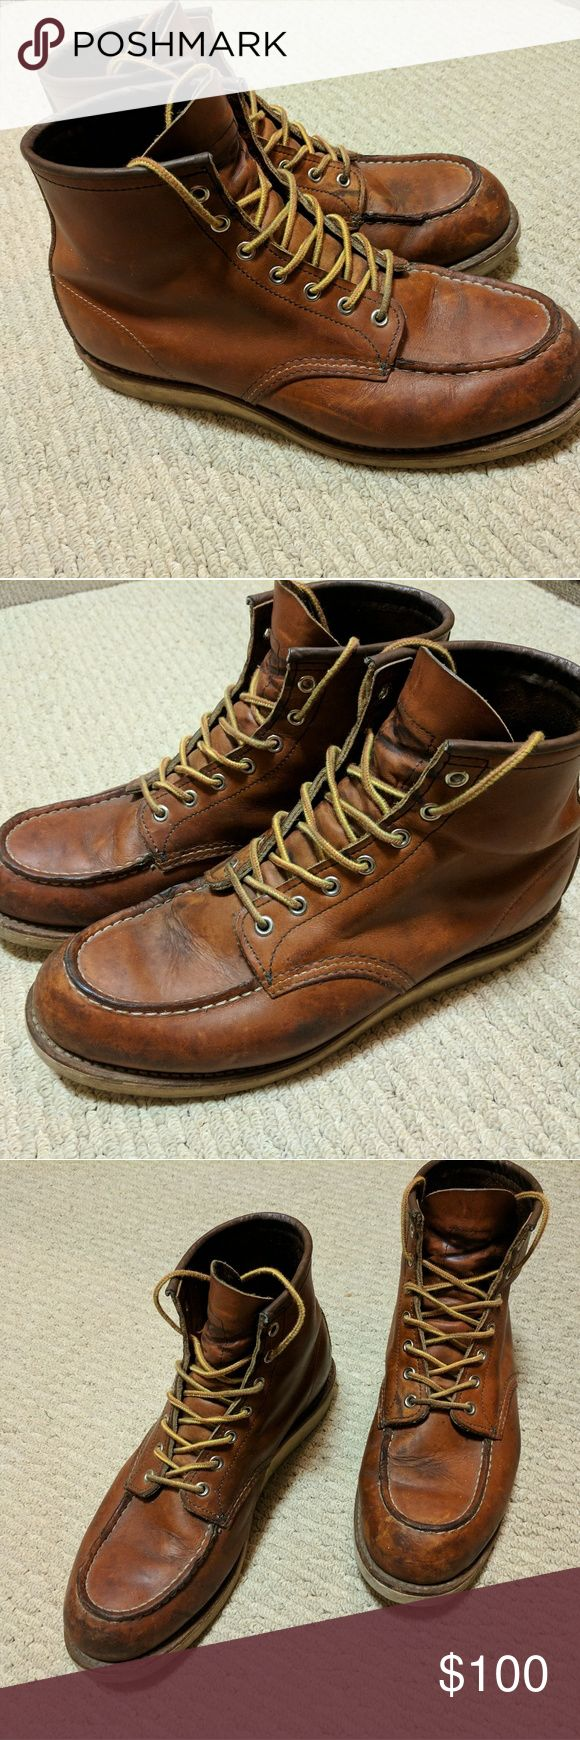 Red wings moc heritage boots Size 12D Red Wing Shoes Shoes Boots